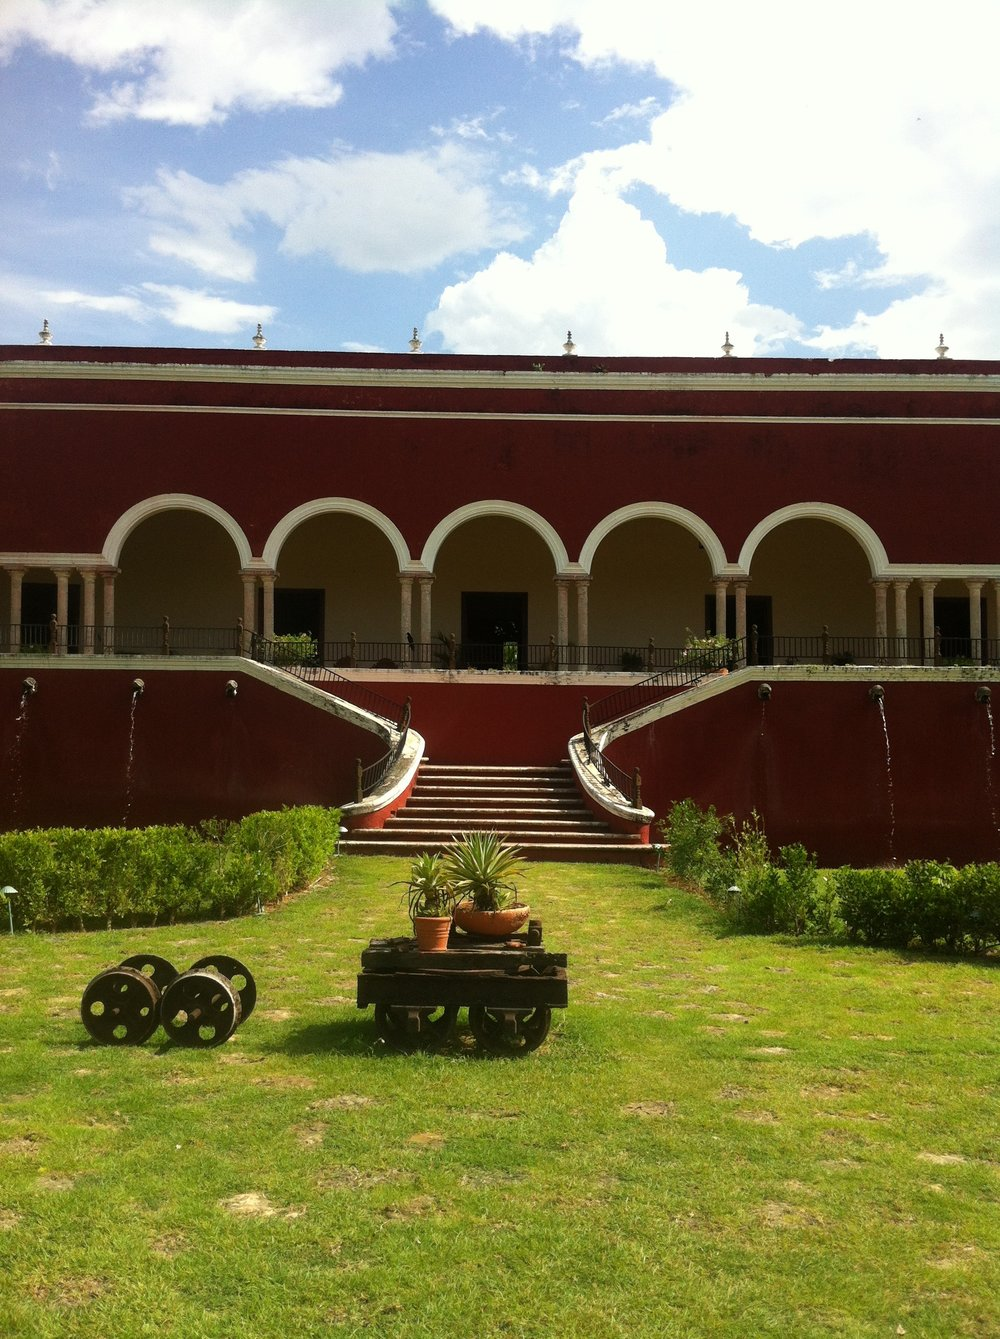 TRAVEL YUCATAN - The Haciendas of the Yucatan: History and Renaissance     Photo Credit: Susannah Rigg